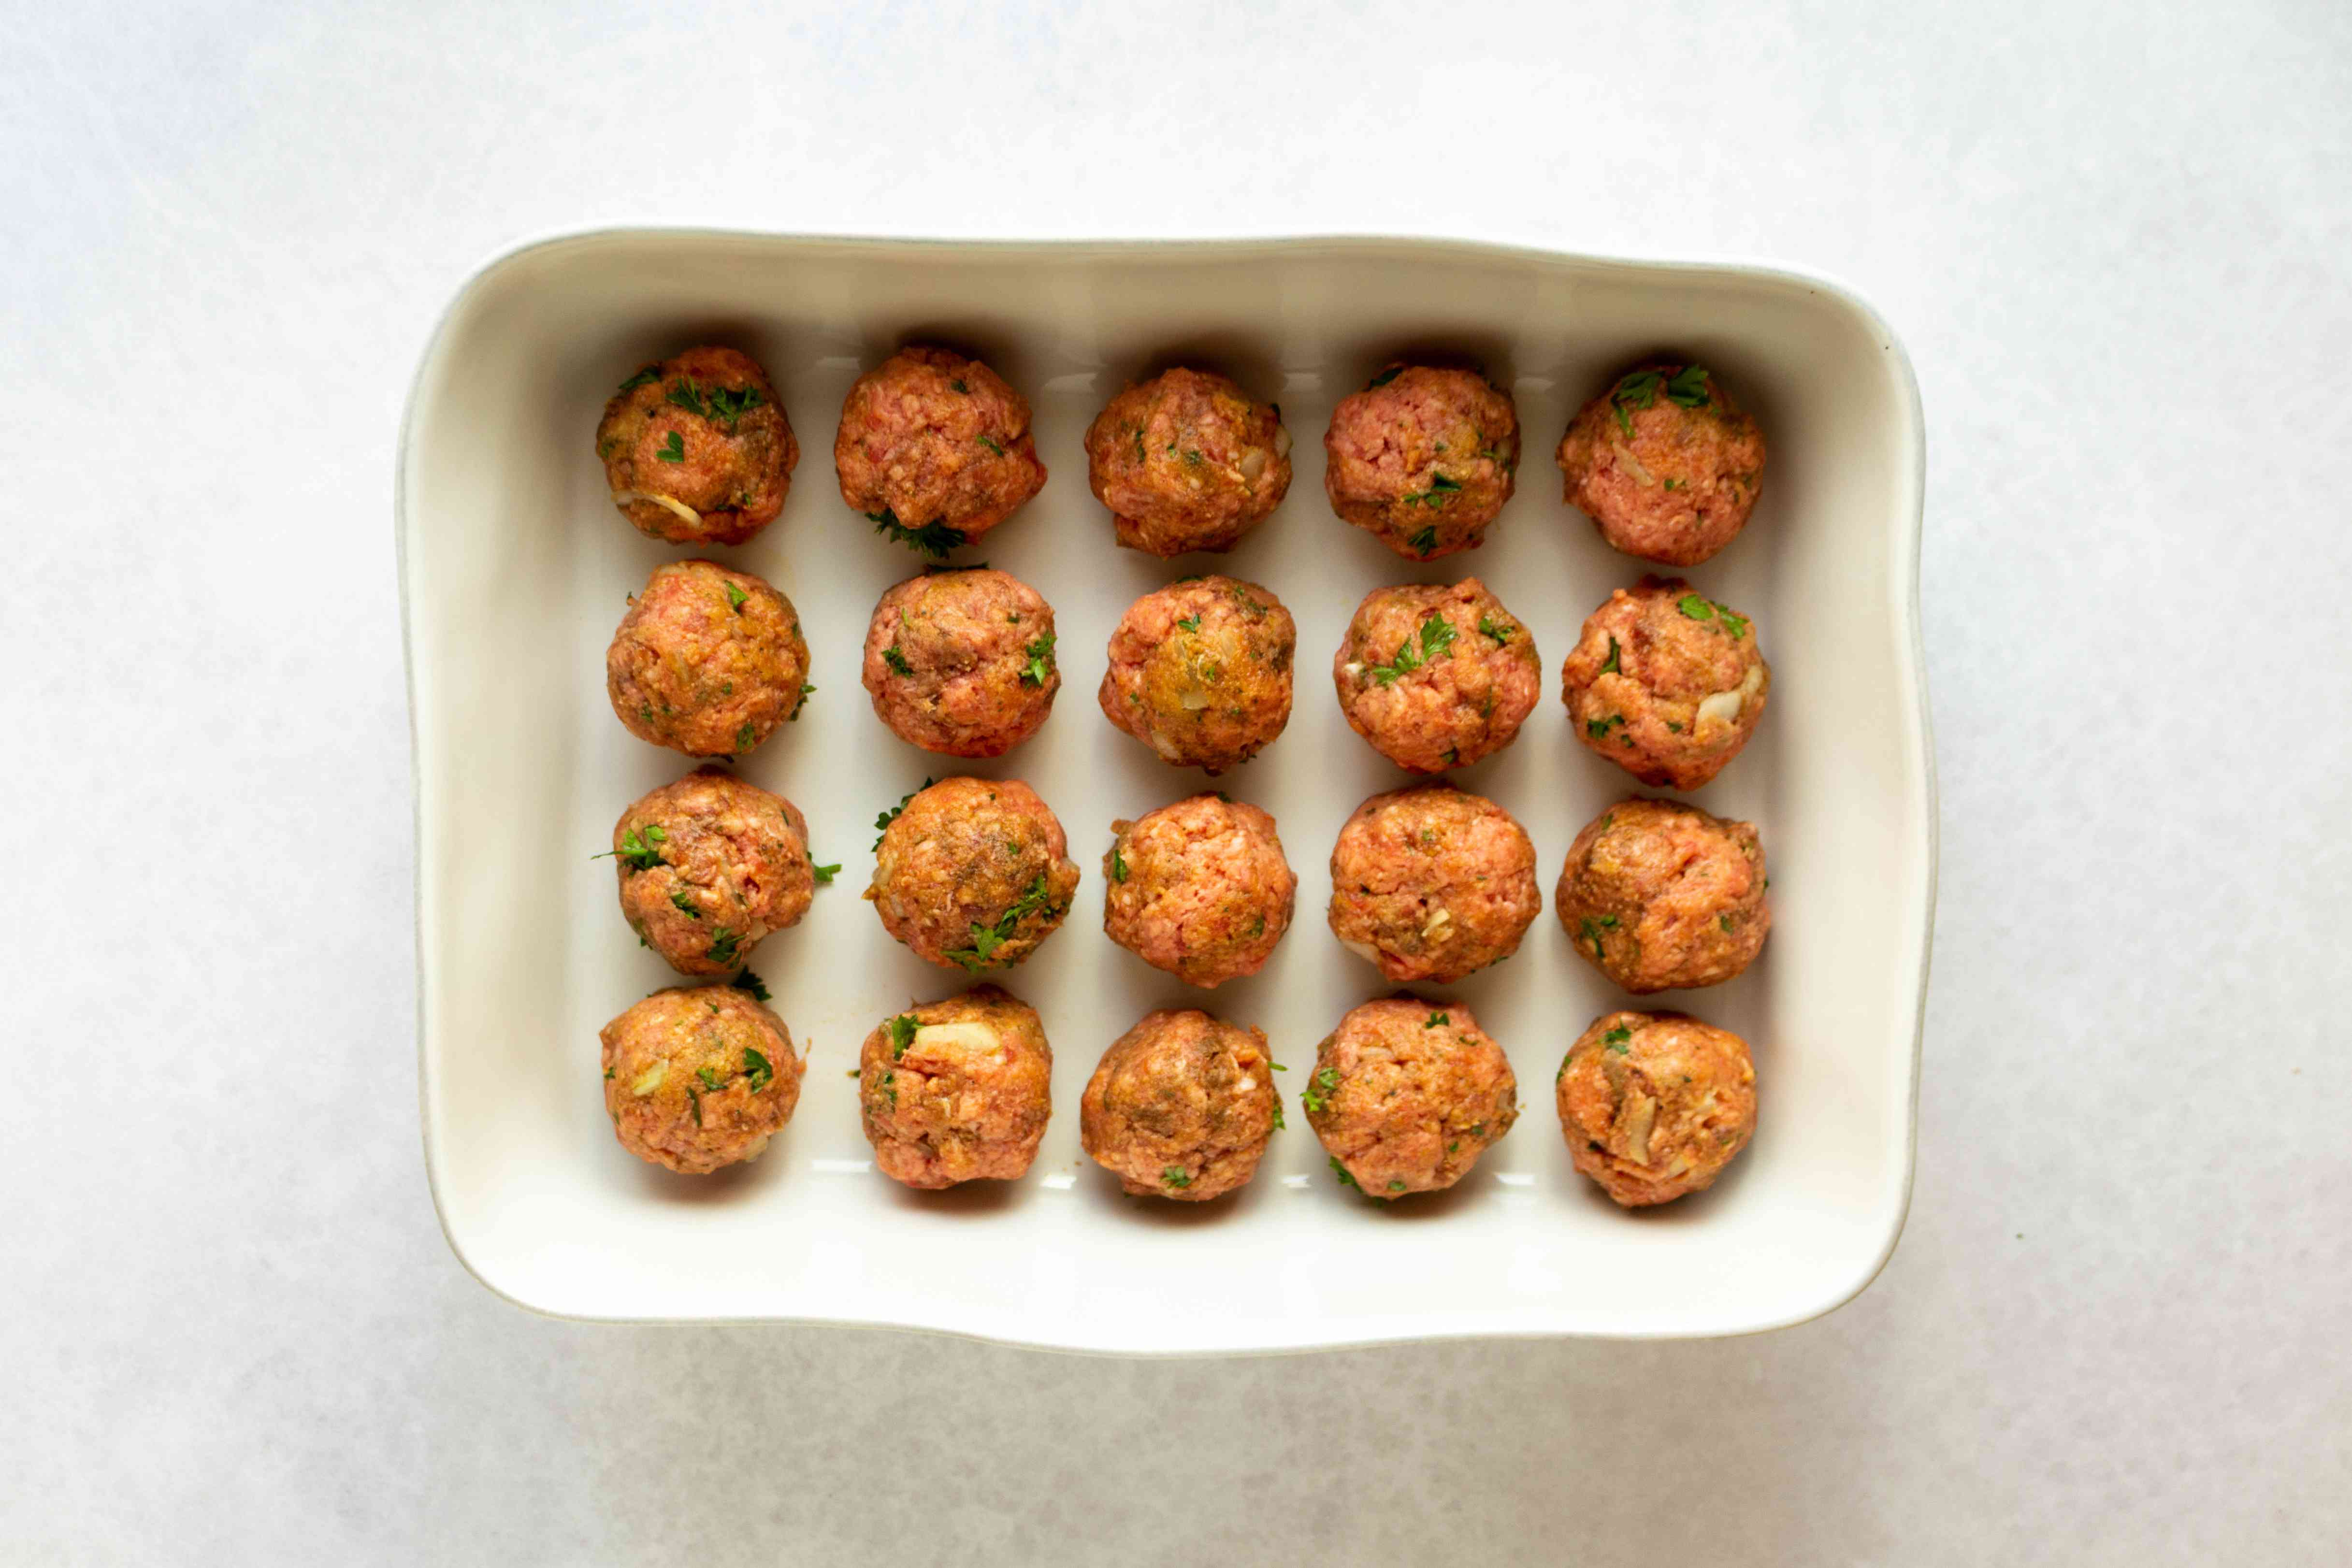 meatballs in a baking dish